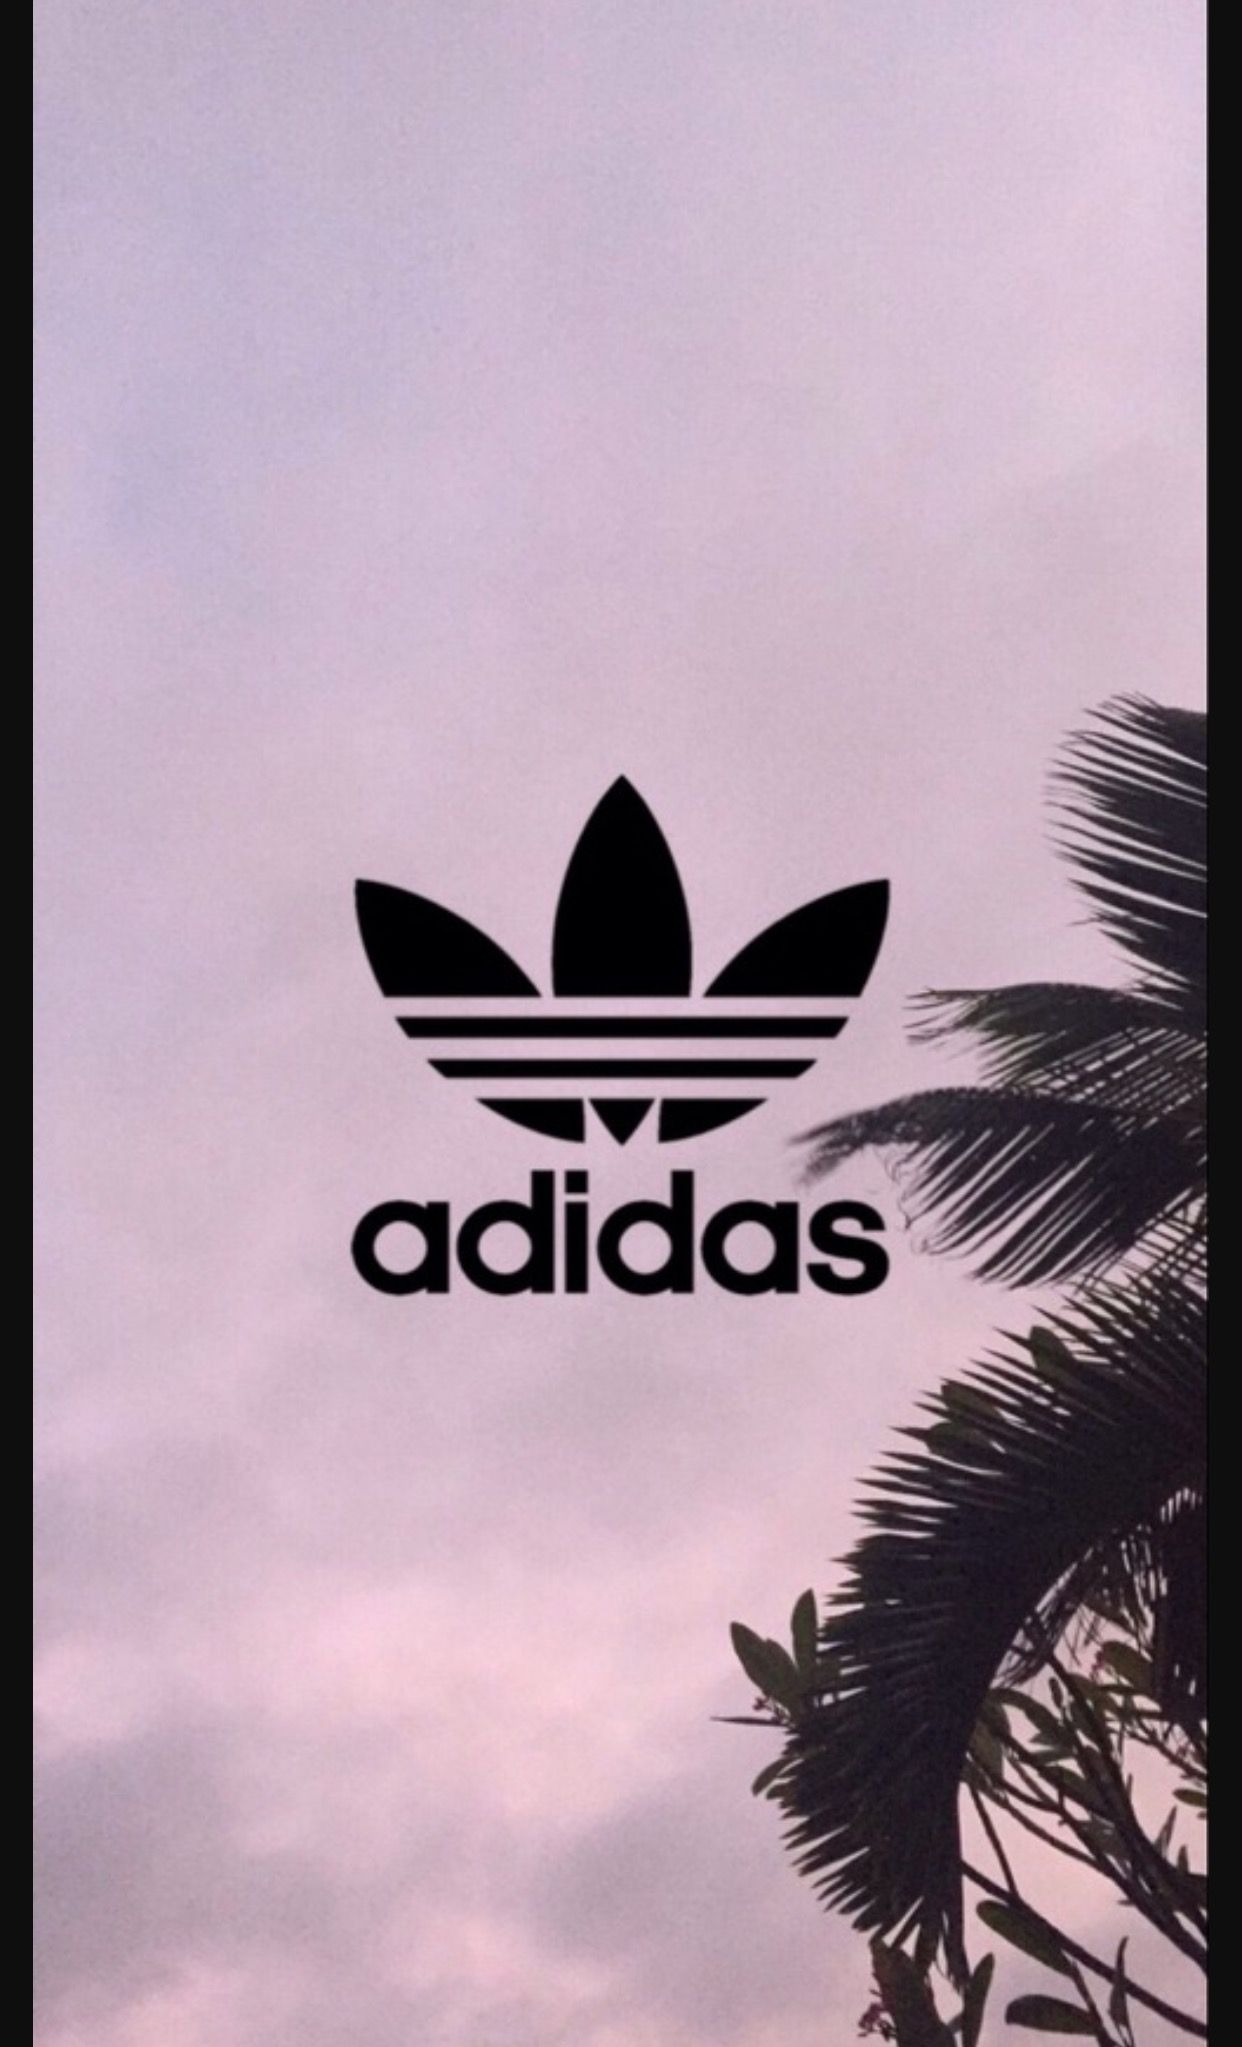 All Images Net Iphone Hintergrundbild Tumblr Hipster Hd 4k 05 Mehr Sehen Bei All I Iphone Wallpaper Tumblr Hipster Hipster Wallpaper Wallpaper Tumblr Hipsters